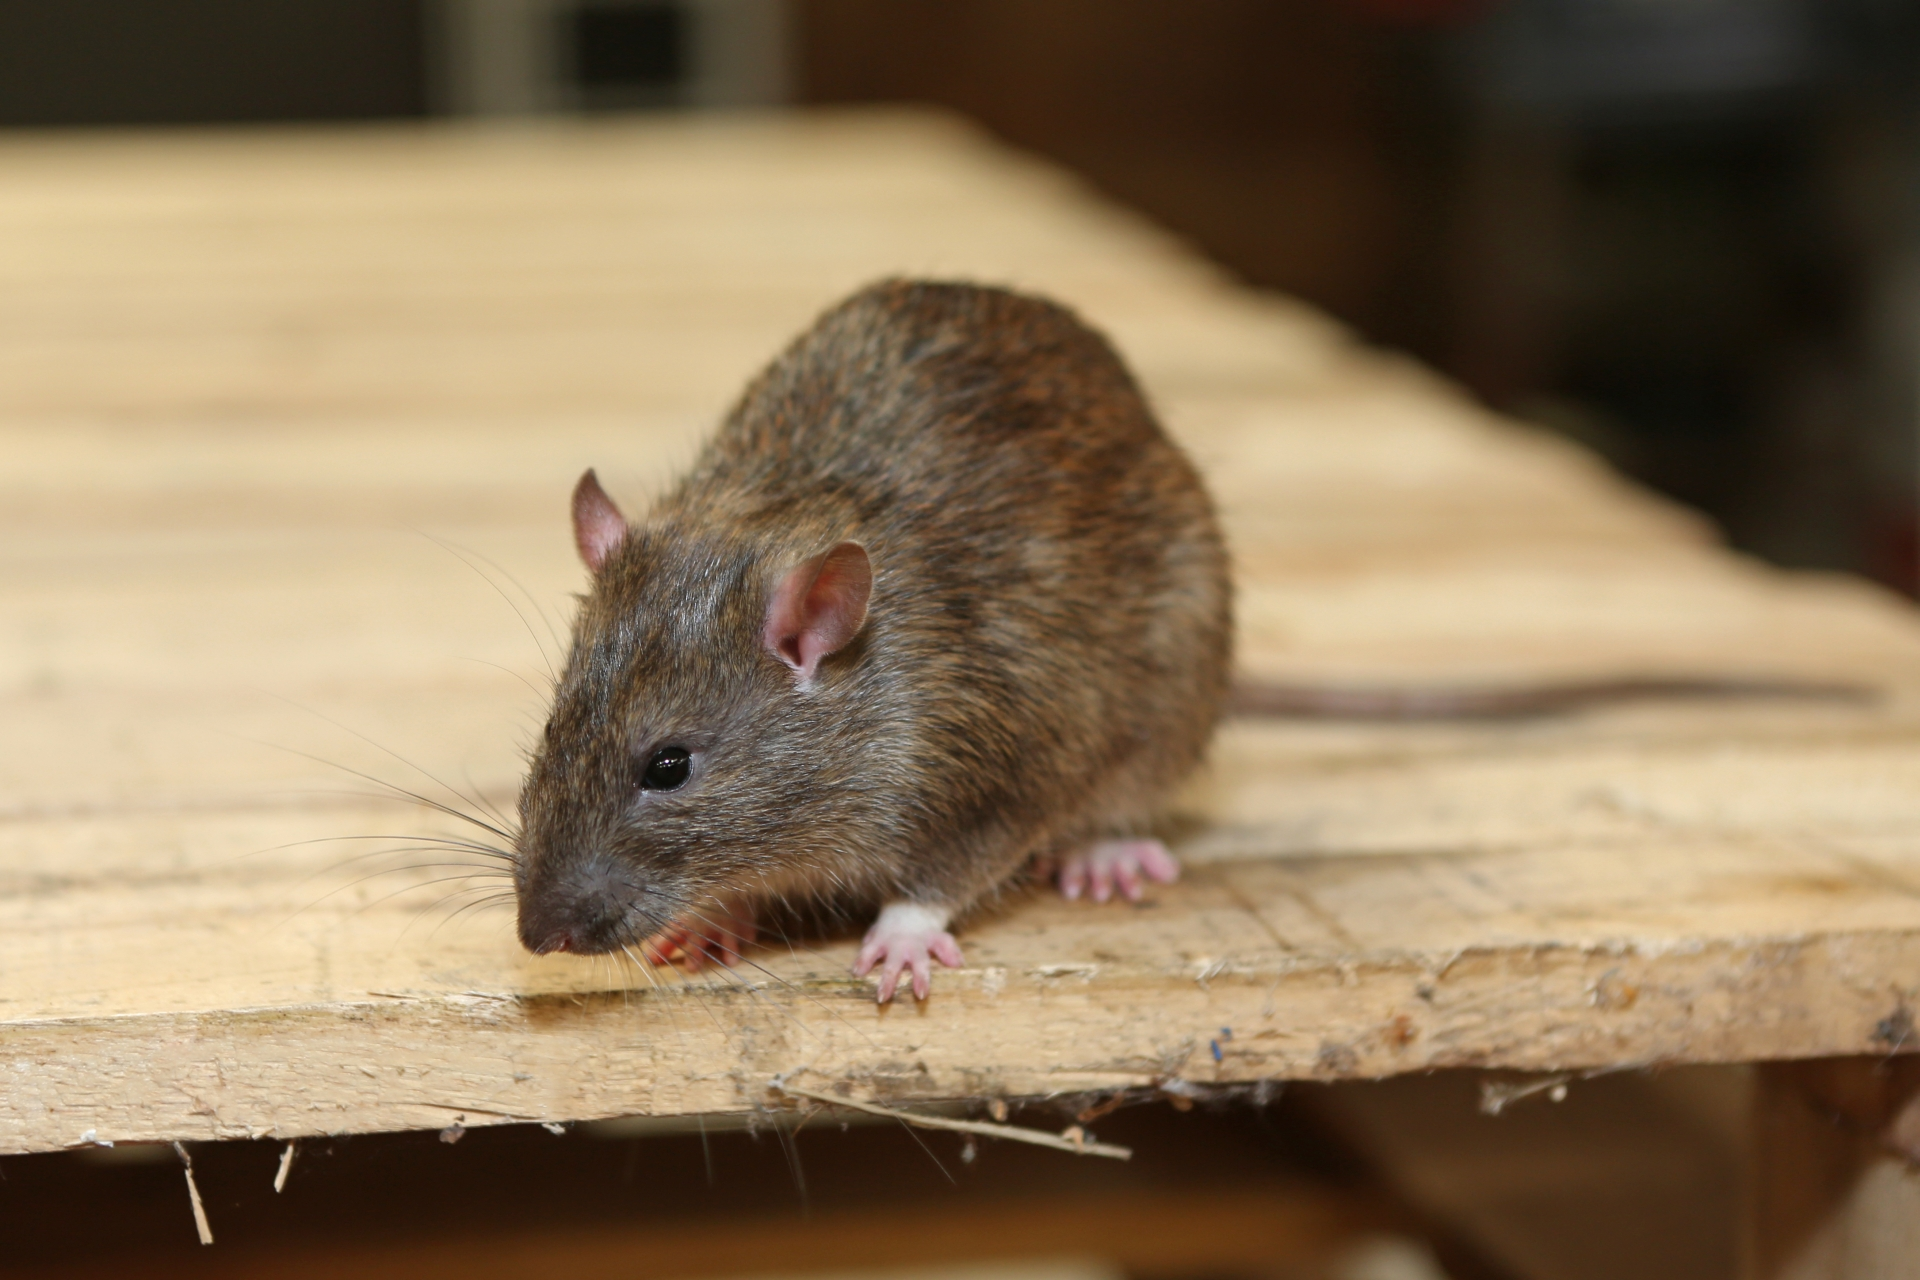 Rat Control, Pest Control in Purley, Kenley, CR8. Call Now 020 8166 9746